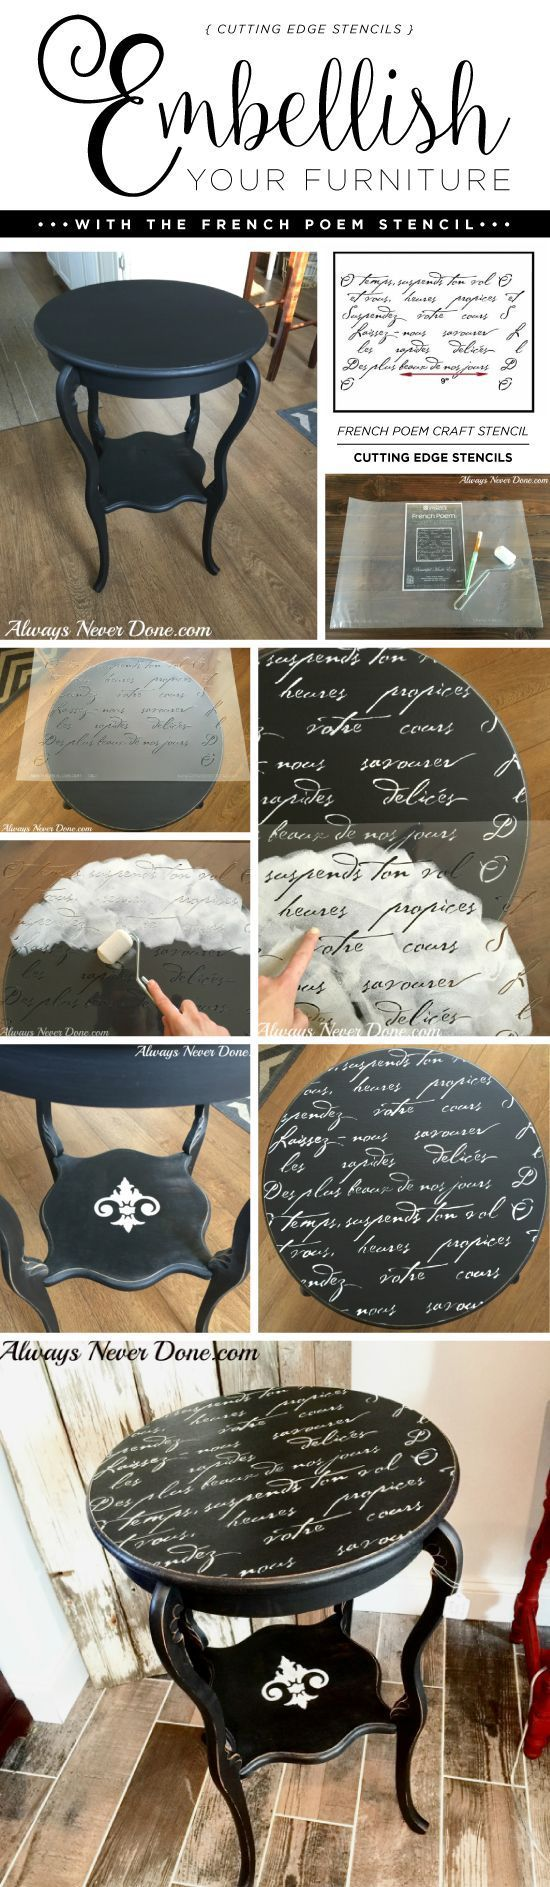 Cutting Edge Stencils shares a DIY side table makeover using the French Poem Craft Stencil and Chalk Paint.  www.cuttingedgest...